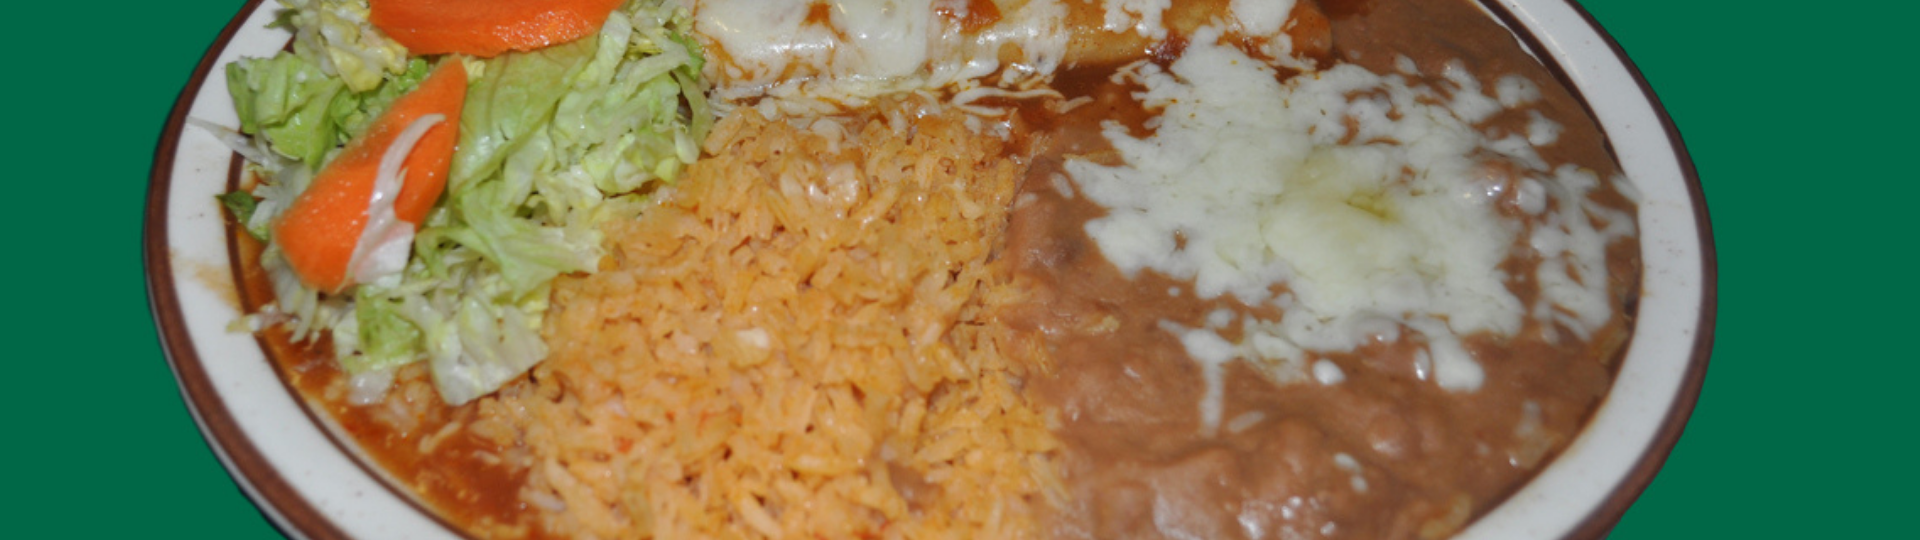 enchilada, rice, and beans